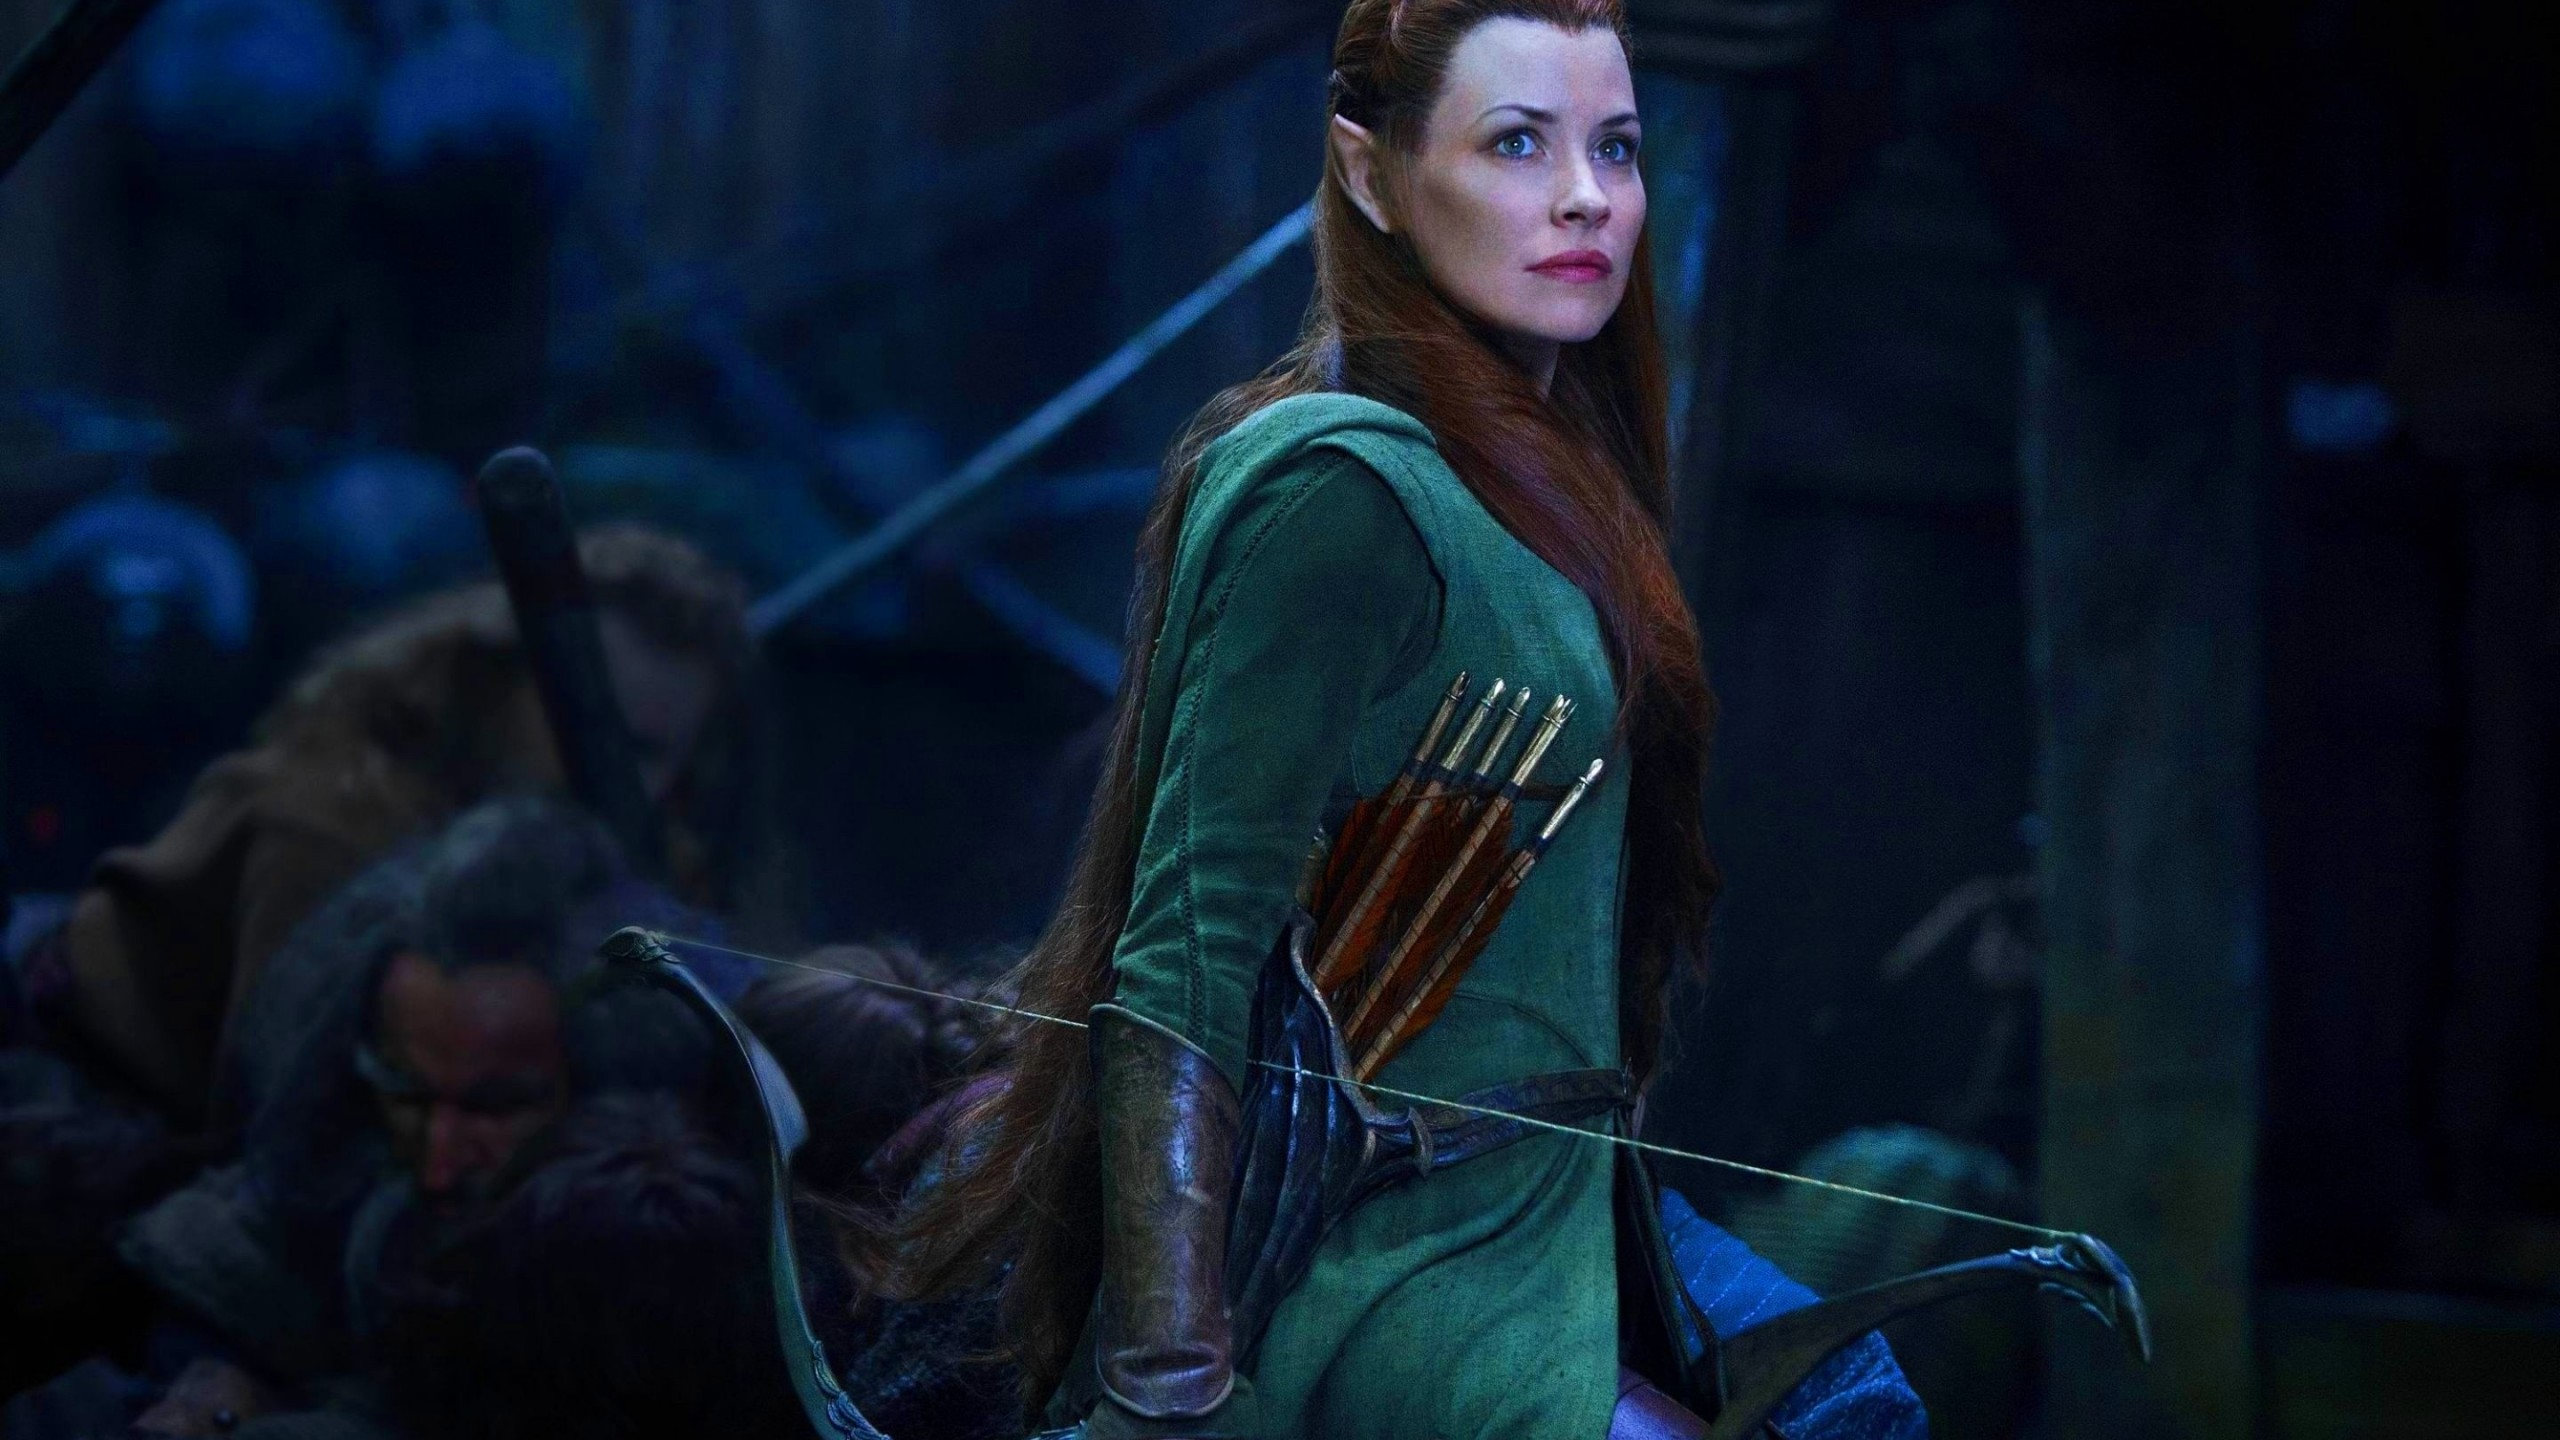 Evangeline Lilly In The Hobbit wallpaper   1423523 2560x1440